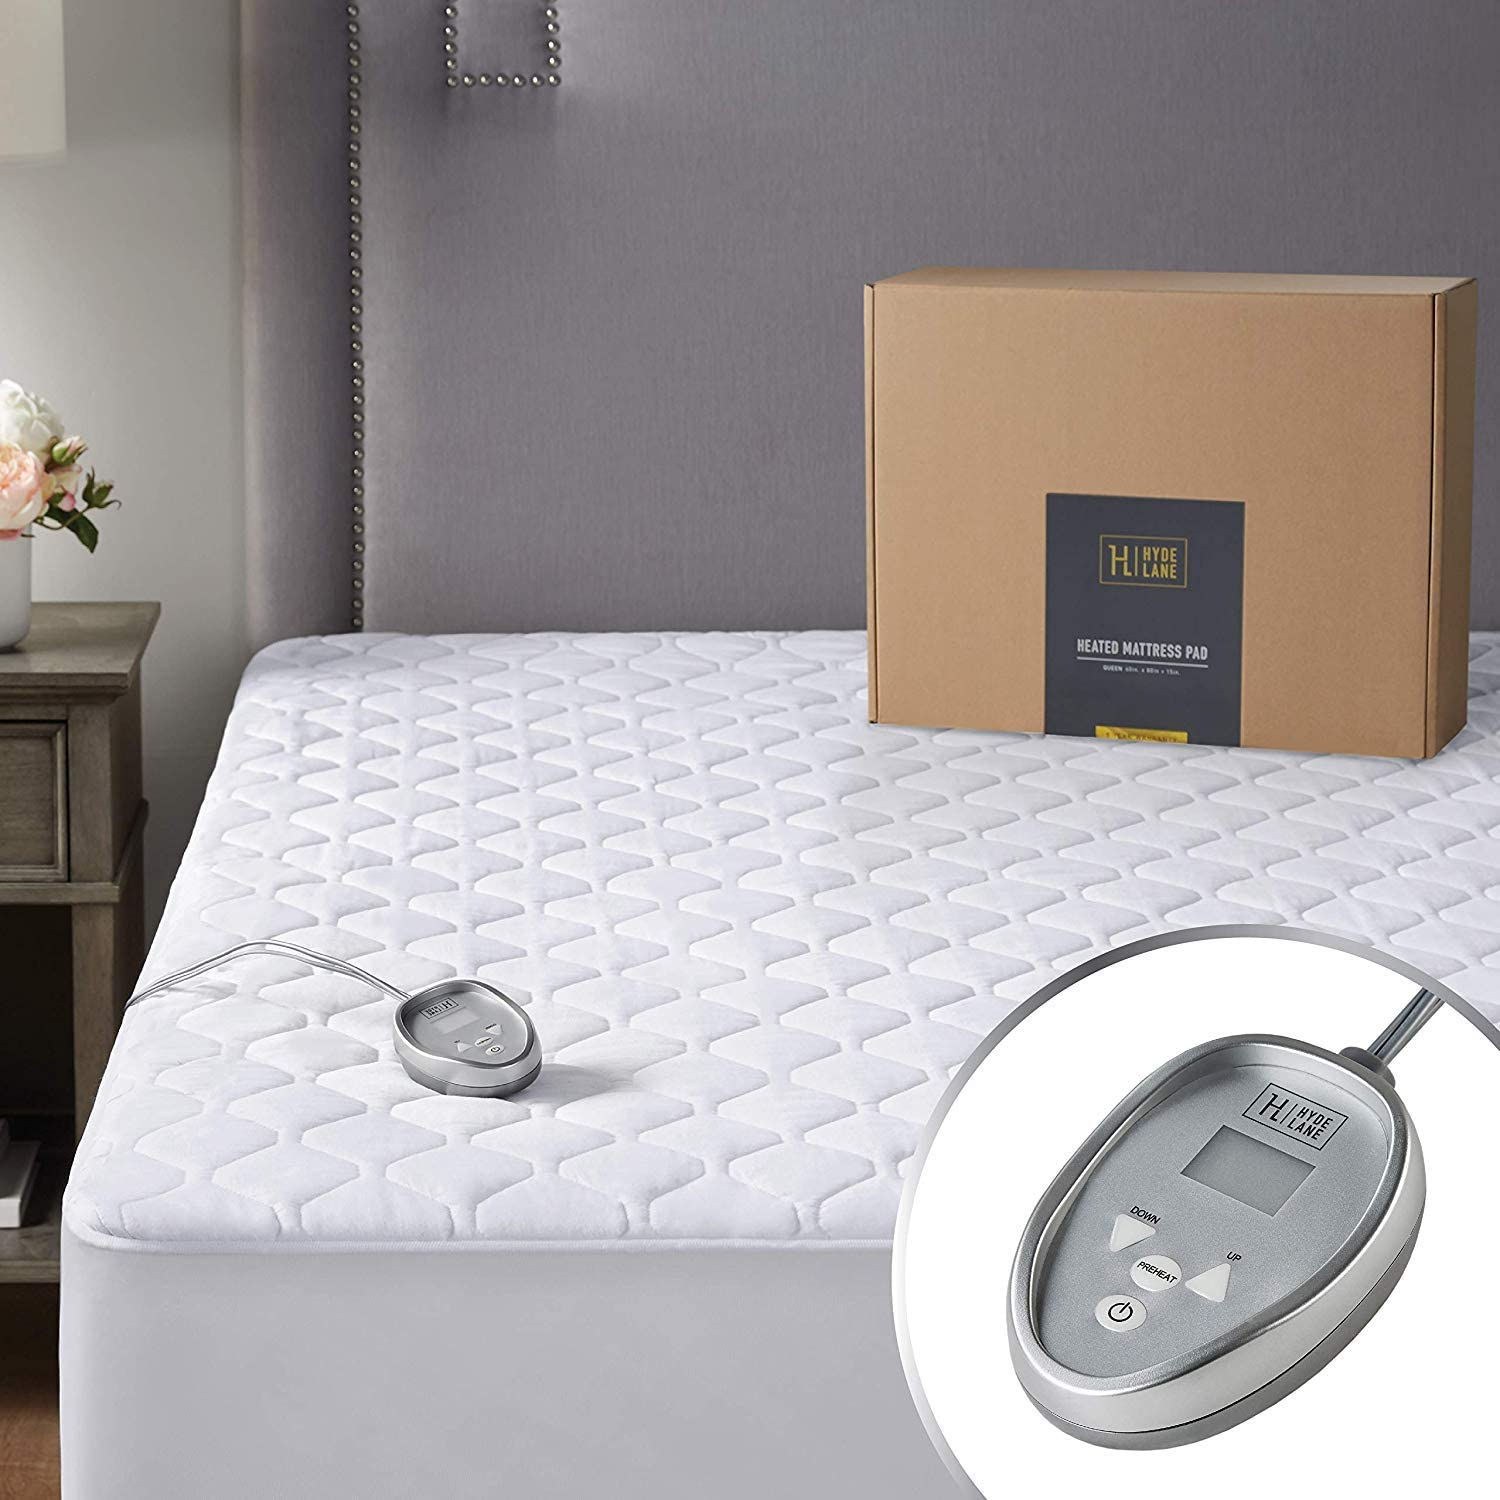 Premium Mattress Heating Pad Full Memphis Mall 54x75 Cott Super beauty product restock quality top Quilted Size inch